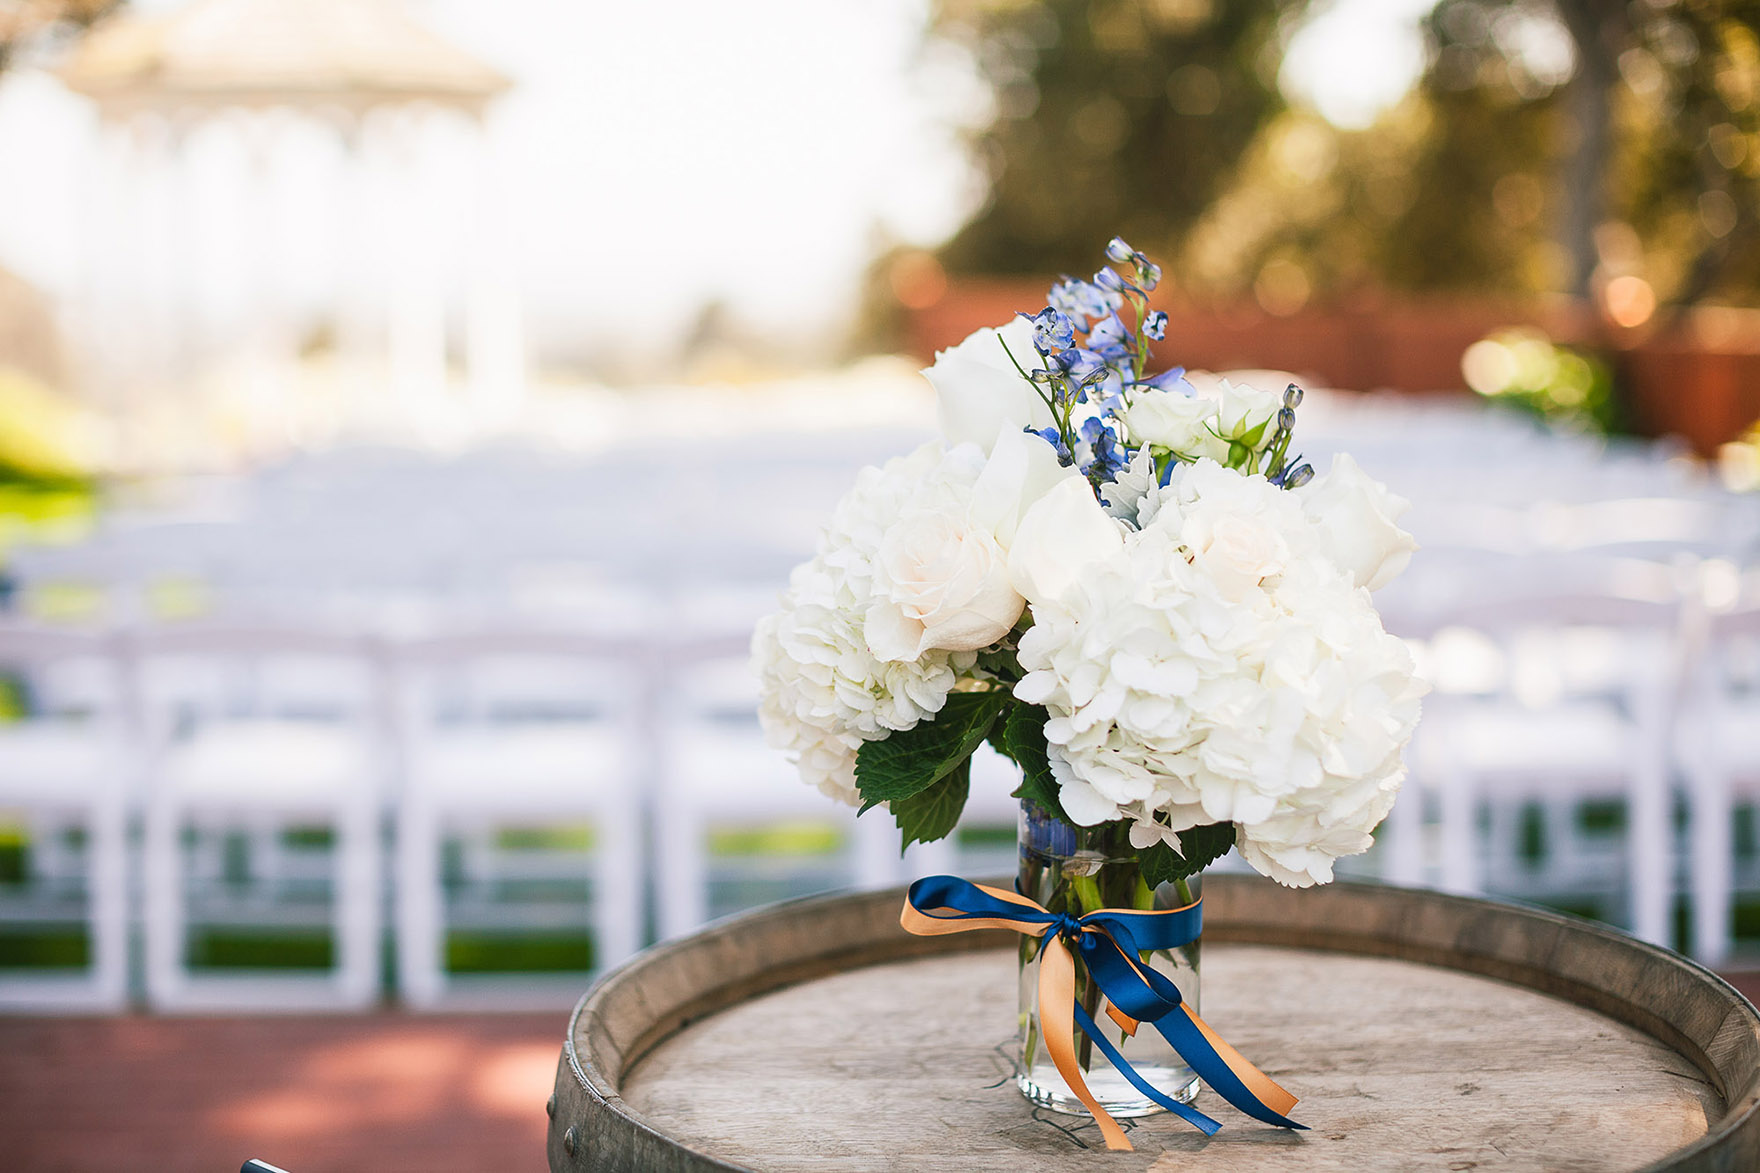 bouquet vase of flowers sits on a wooden wine barrel decor decorations diy ready for the ceremony down the aisle at the pasatiempo golf course at the bride and groom newlywed hollins house wedding the perfect santa cruz wedding venue